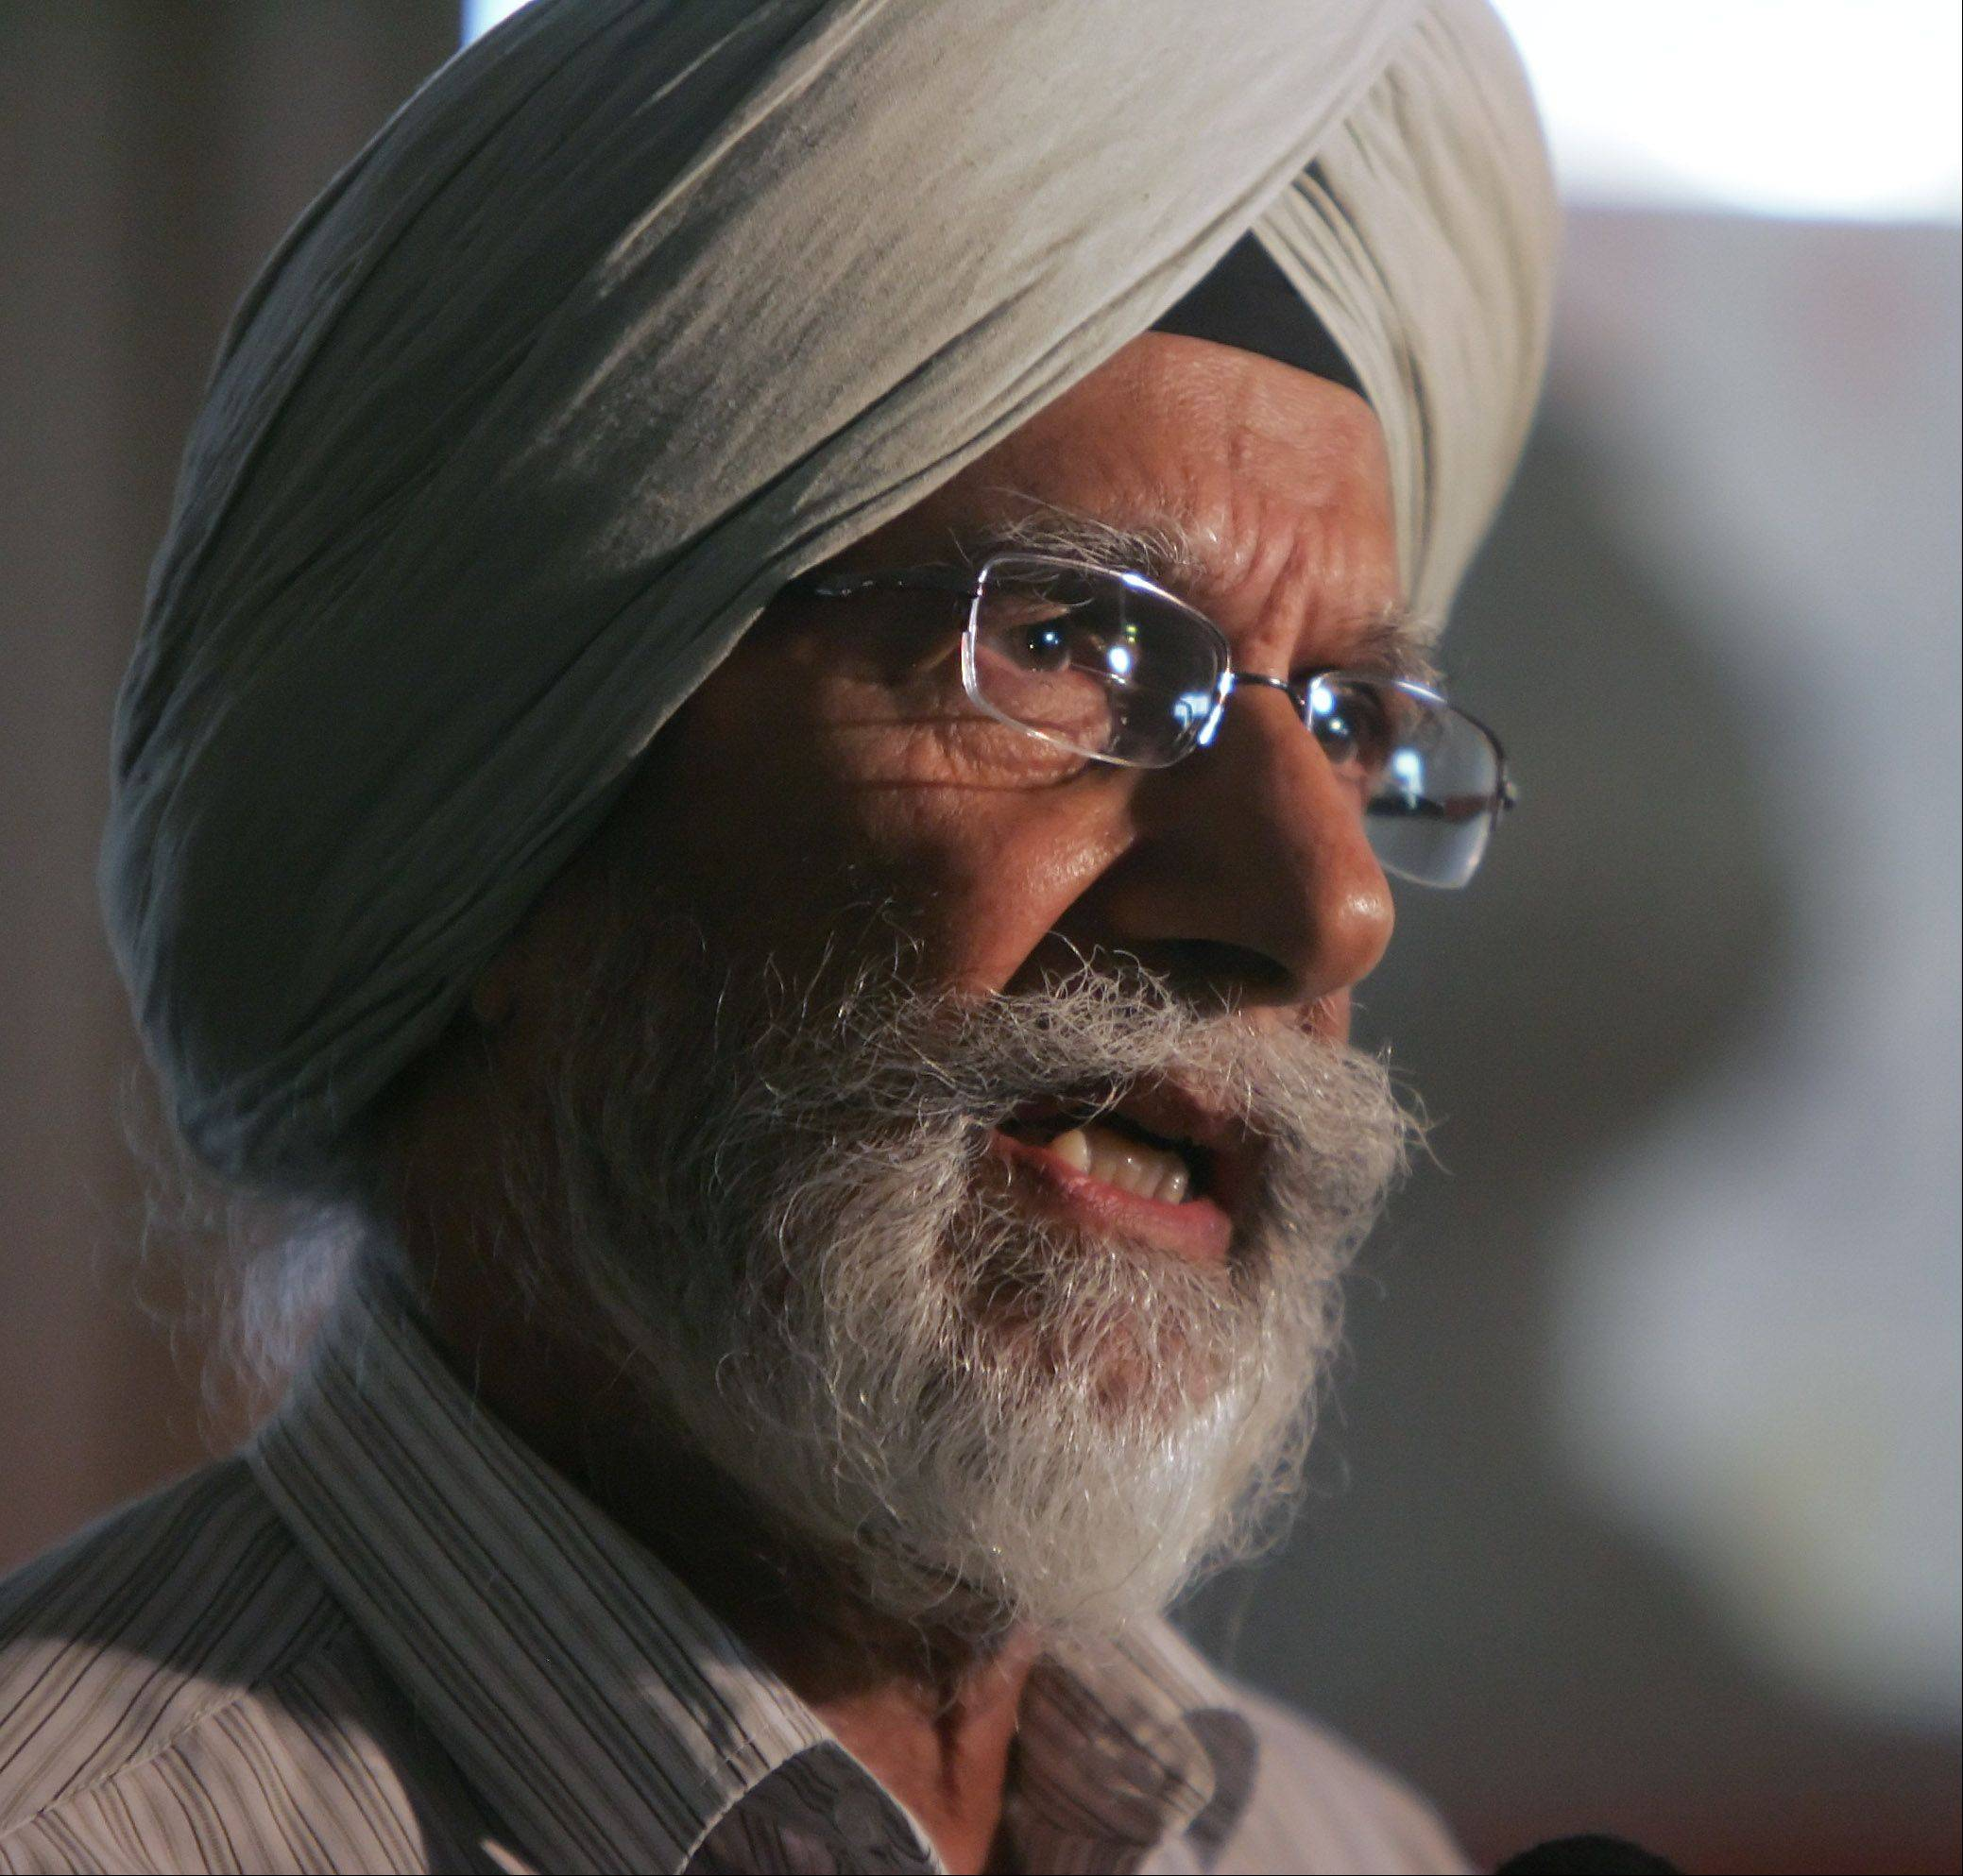 Balwant Singh Hansra, a member of the Sikh Religious Society gurdwara in Palatine, discusses the August shooting at a Sikh temple near Milwaukee in which six worshippers were killed. Today he is part of an effort to get federal authorities to track hate crimes against members of the Sikh community.